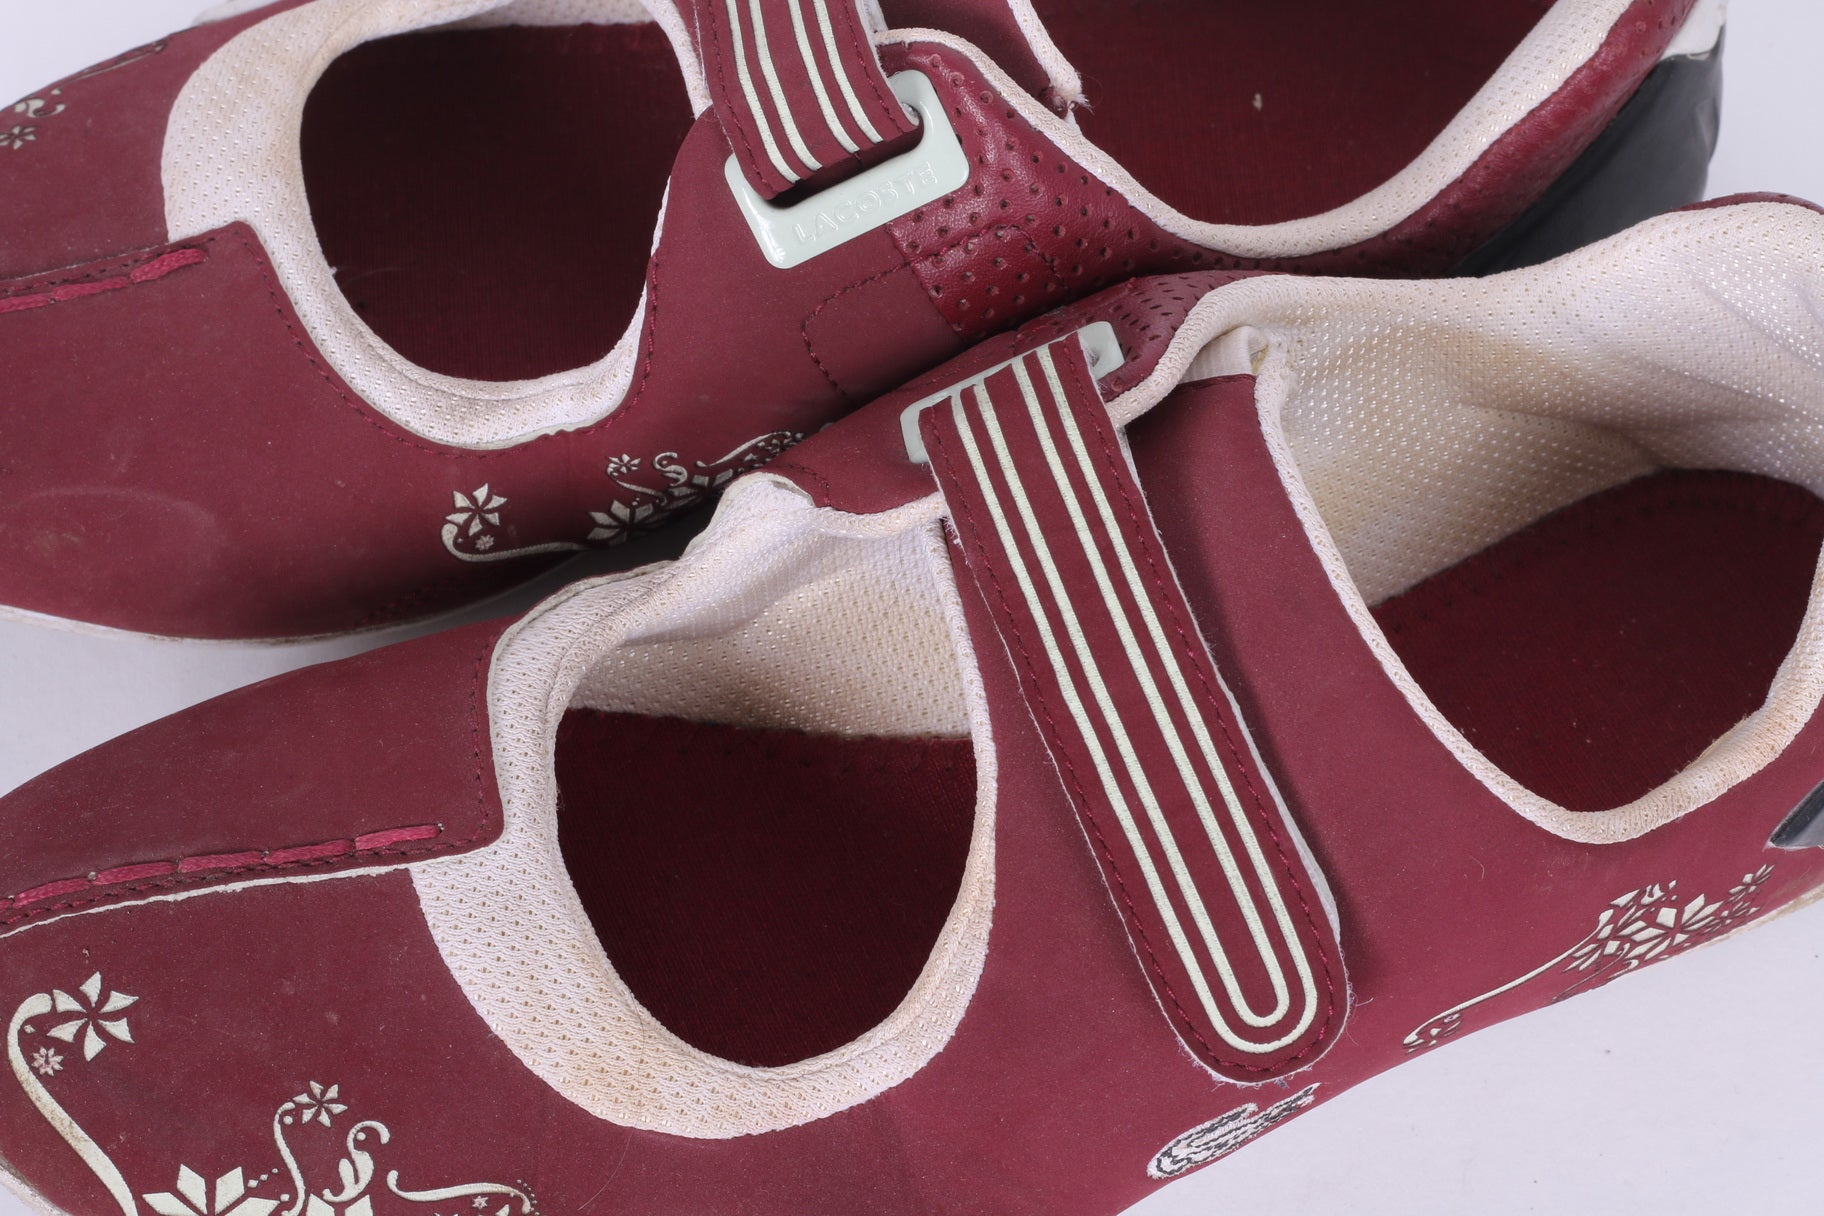 64bfcb839061 ... Lacoste Womens 39.5 UK 6 Shoes Burgundy Trainers Flowers ...